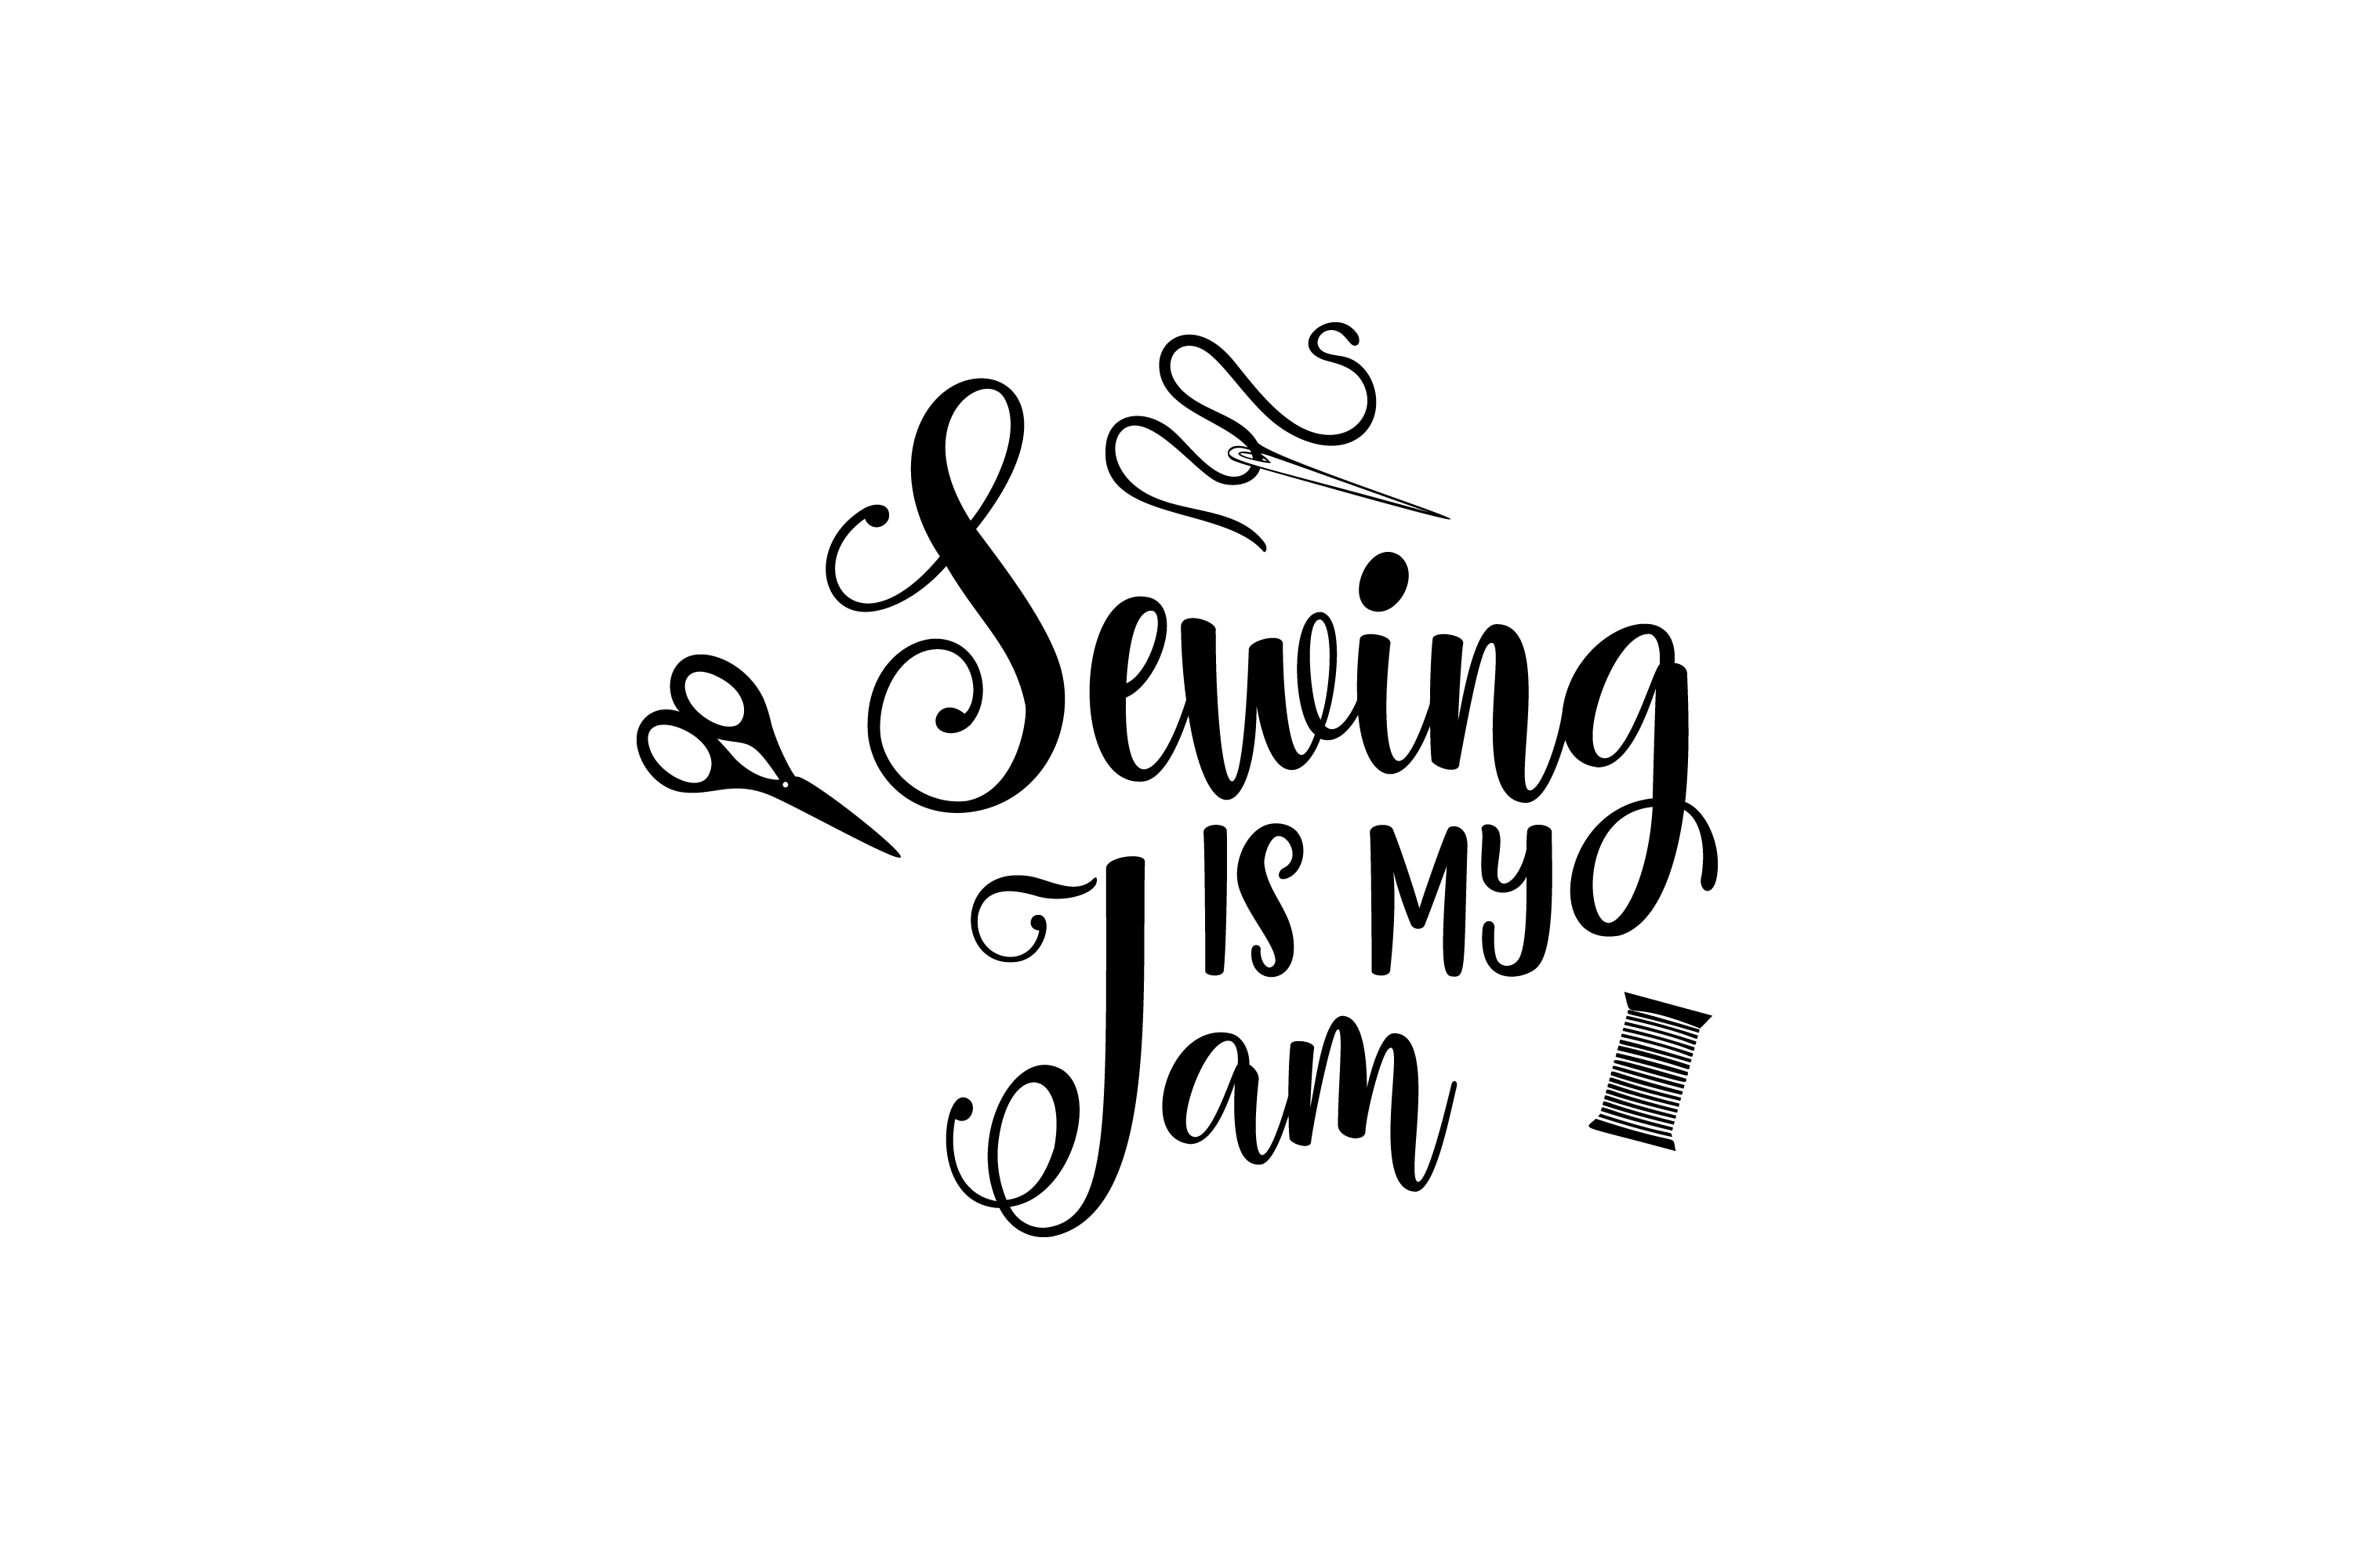 Download Free Sewing Is My Jam Graphic Graphic By Am Digital Designs for Cricut Explore, Silhouette and other cutting machines.